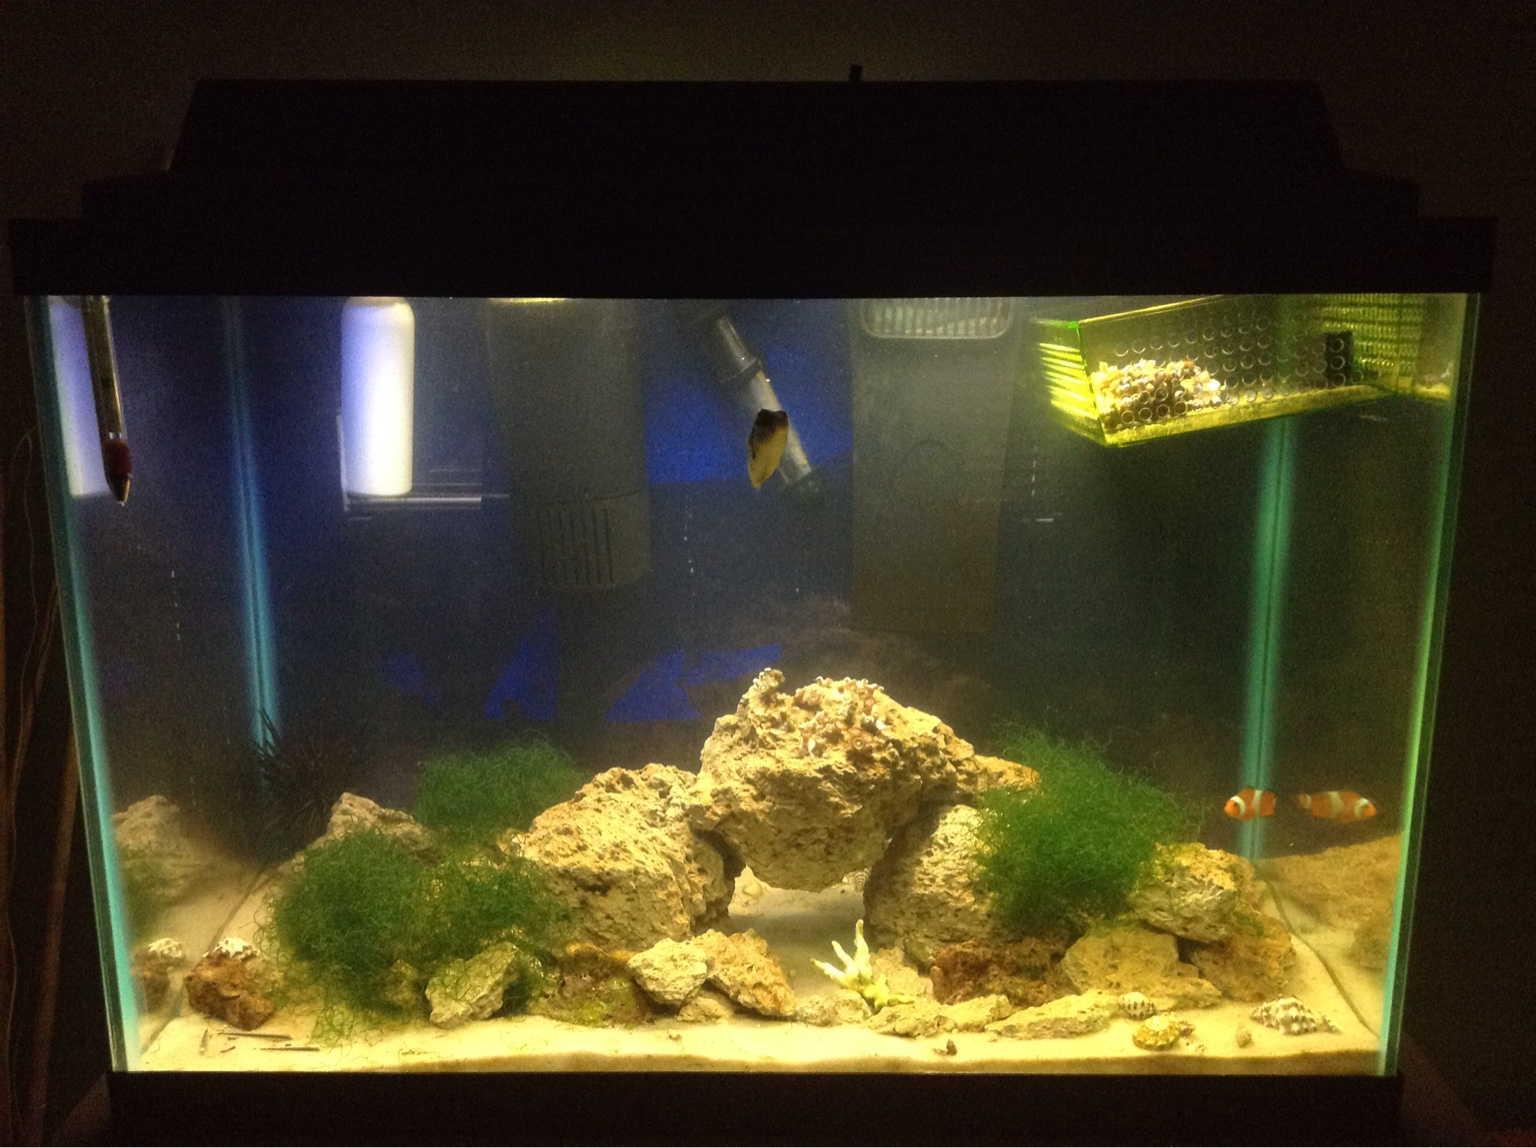 Saltwater aquarium - My Tank Has Been Running For 2 Months Ammonia 0 0 5ppm Nitrites 0 My Nitrates Have Been At 0 Since I Ve Introduces Chaeto Into My Tank Ph 8 0